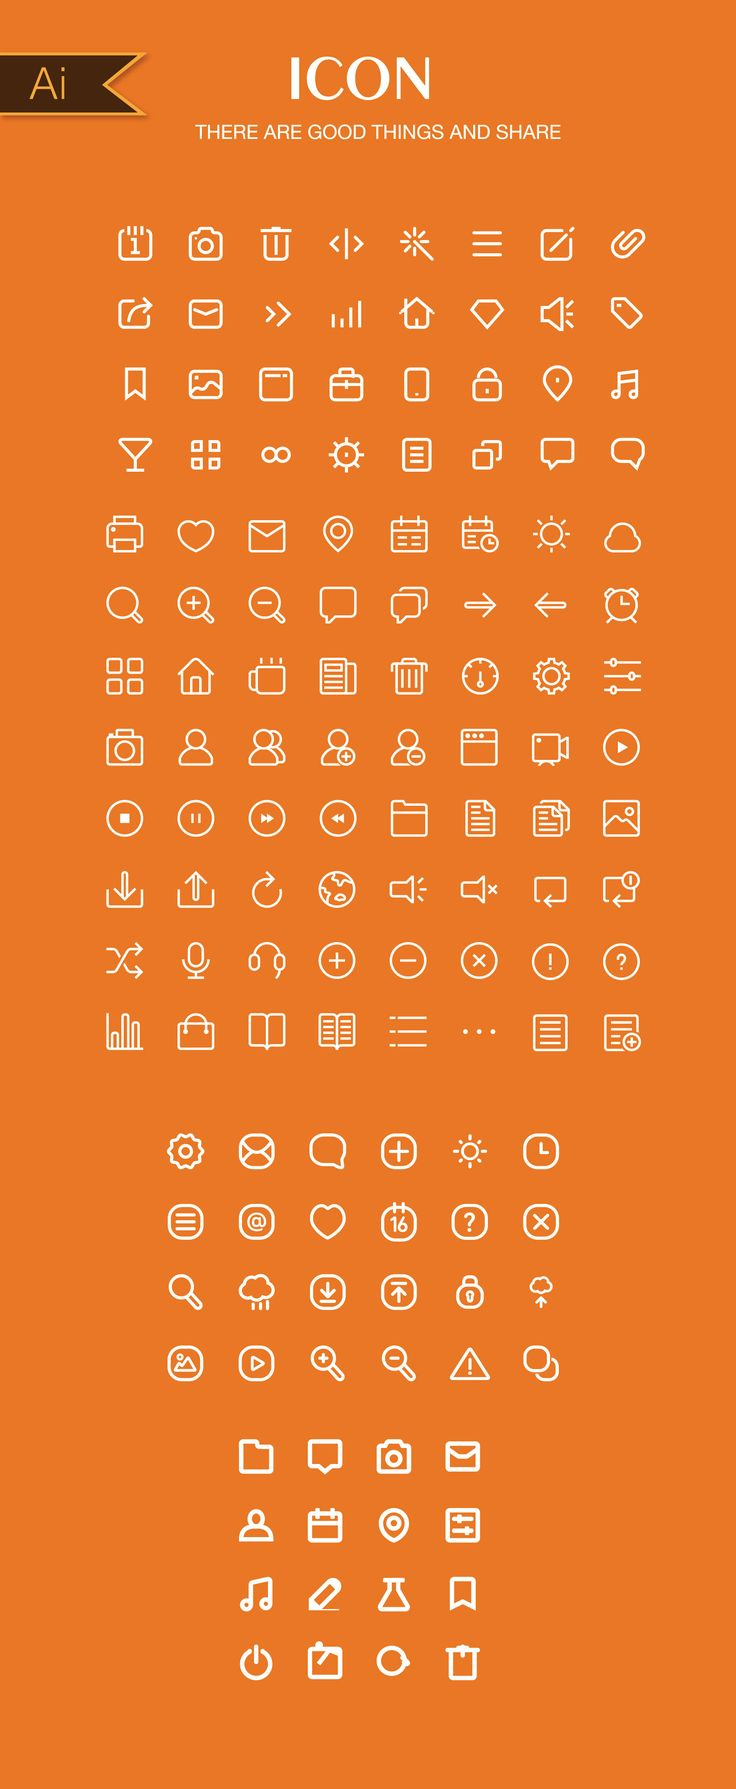 Mobile Phone Icon Vector (136 icons) | http://www.dailyfreepsd.com/icon/telephone-icon/apple-phone-icon/mobile-phone-icon-vector-136-icons.html